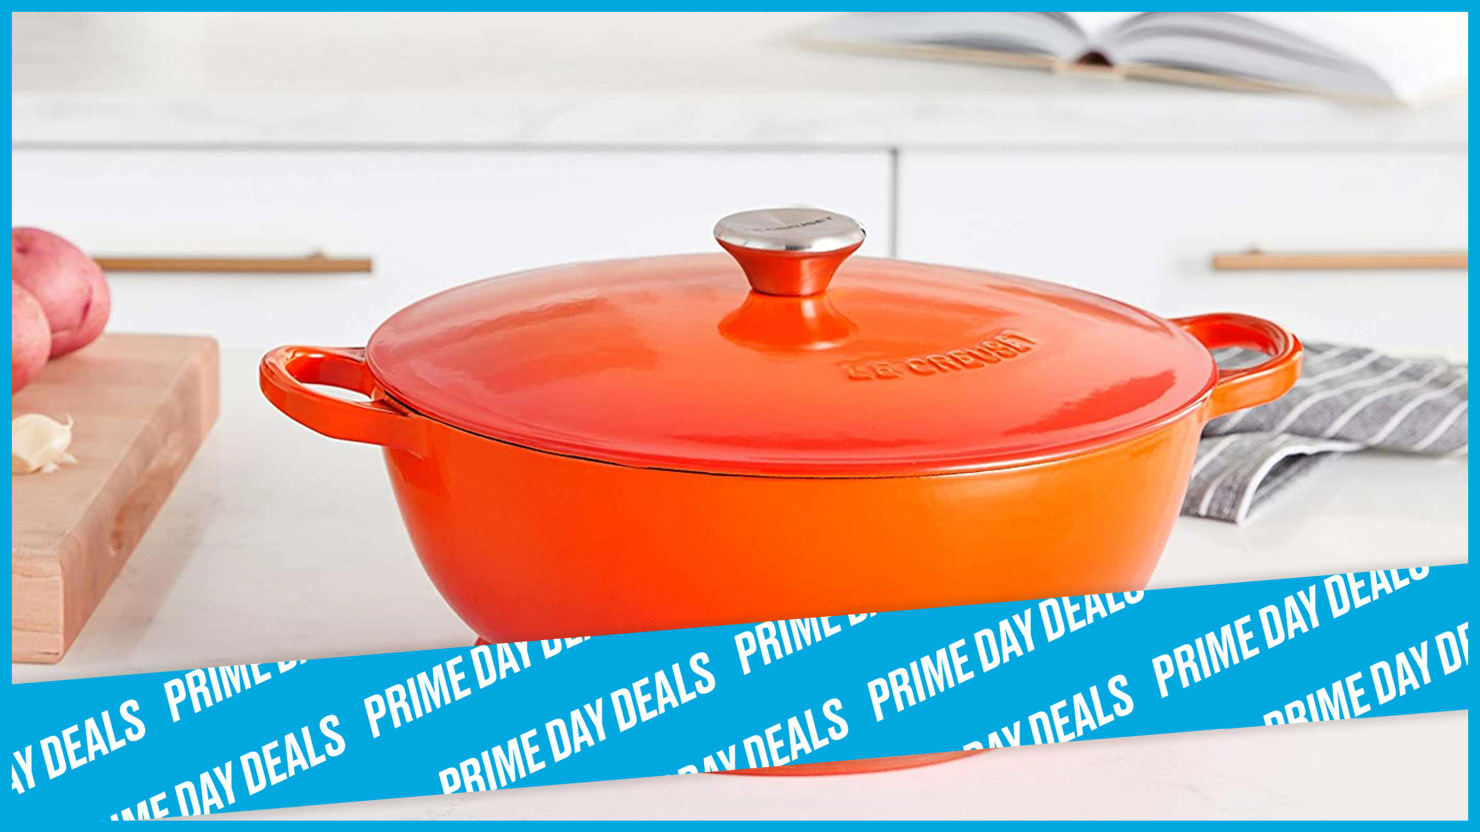 This Classic Le Creuset Oven Is On Sale for Prime Day